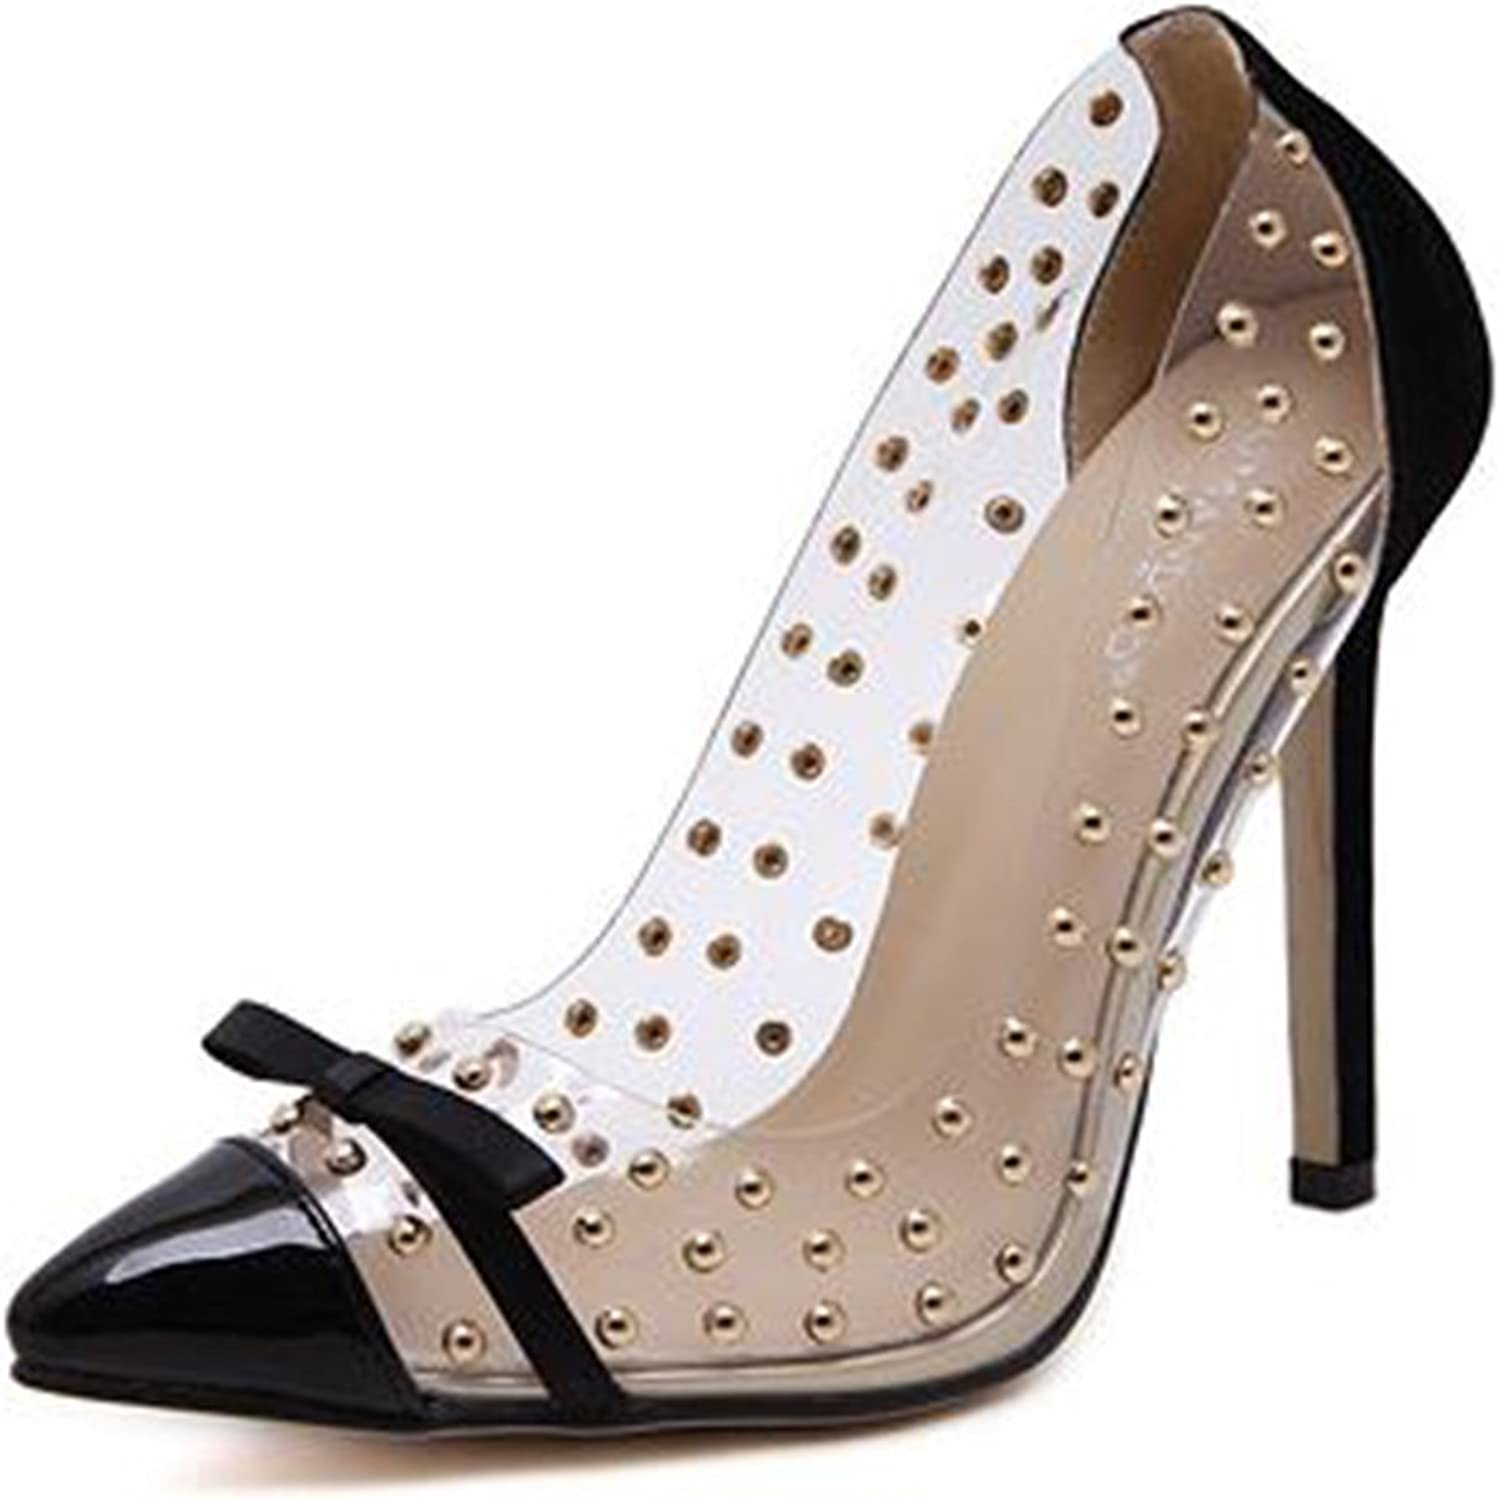 SUNNY Store Women's New Latest Fashion Pump Pointy Toe Evening Kitten Heel shoes New Without Box